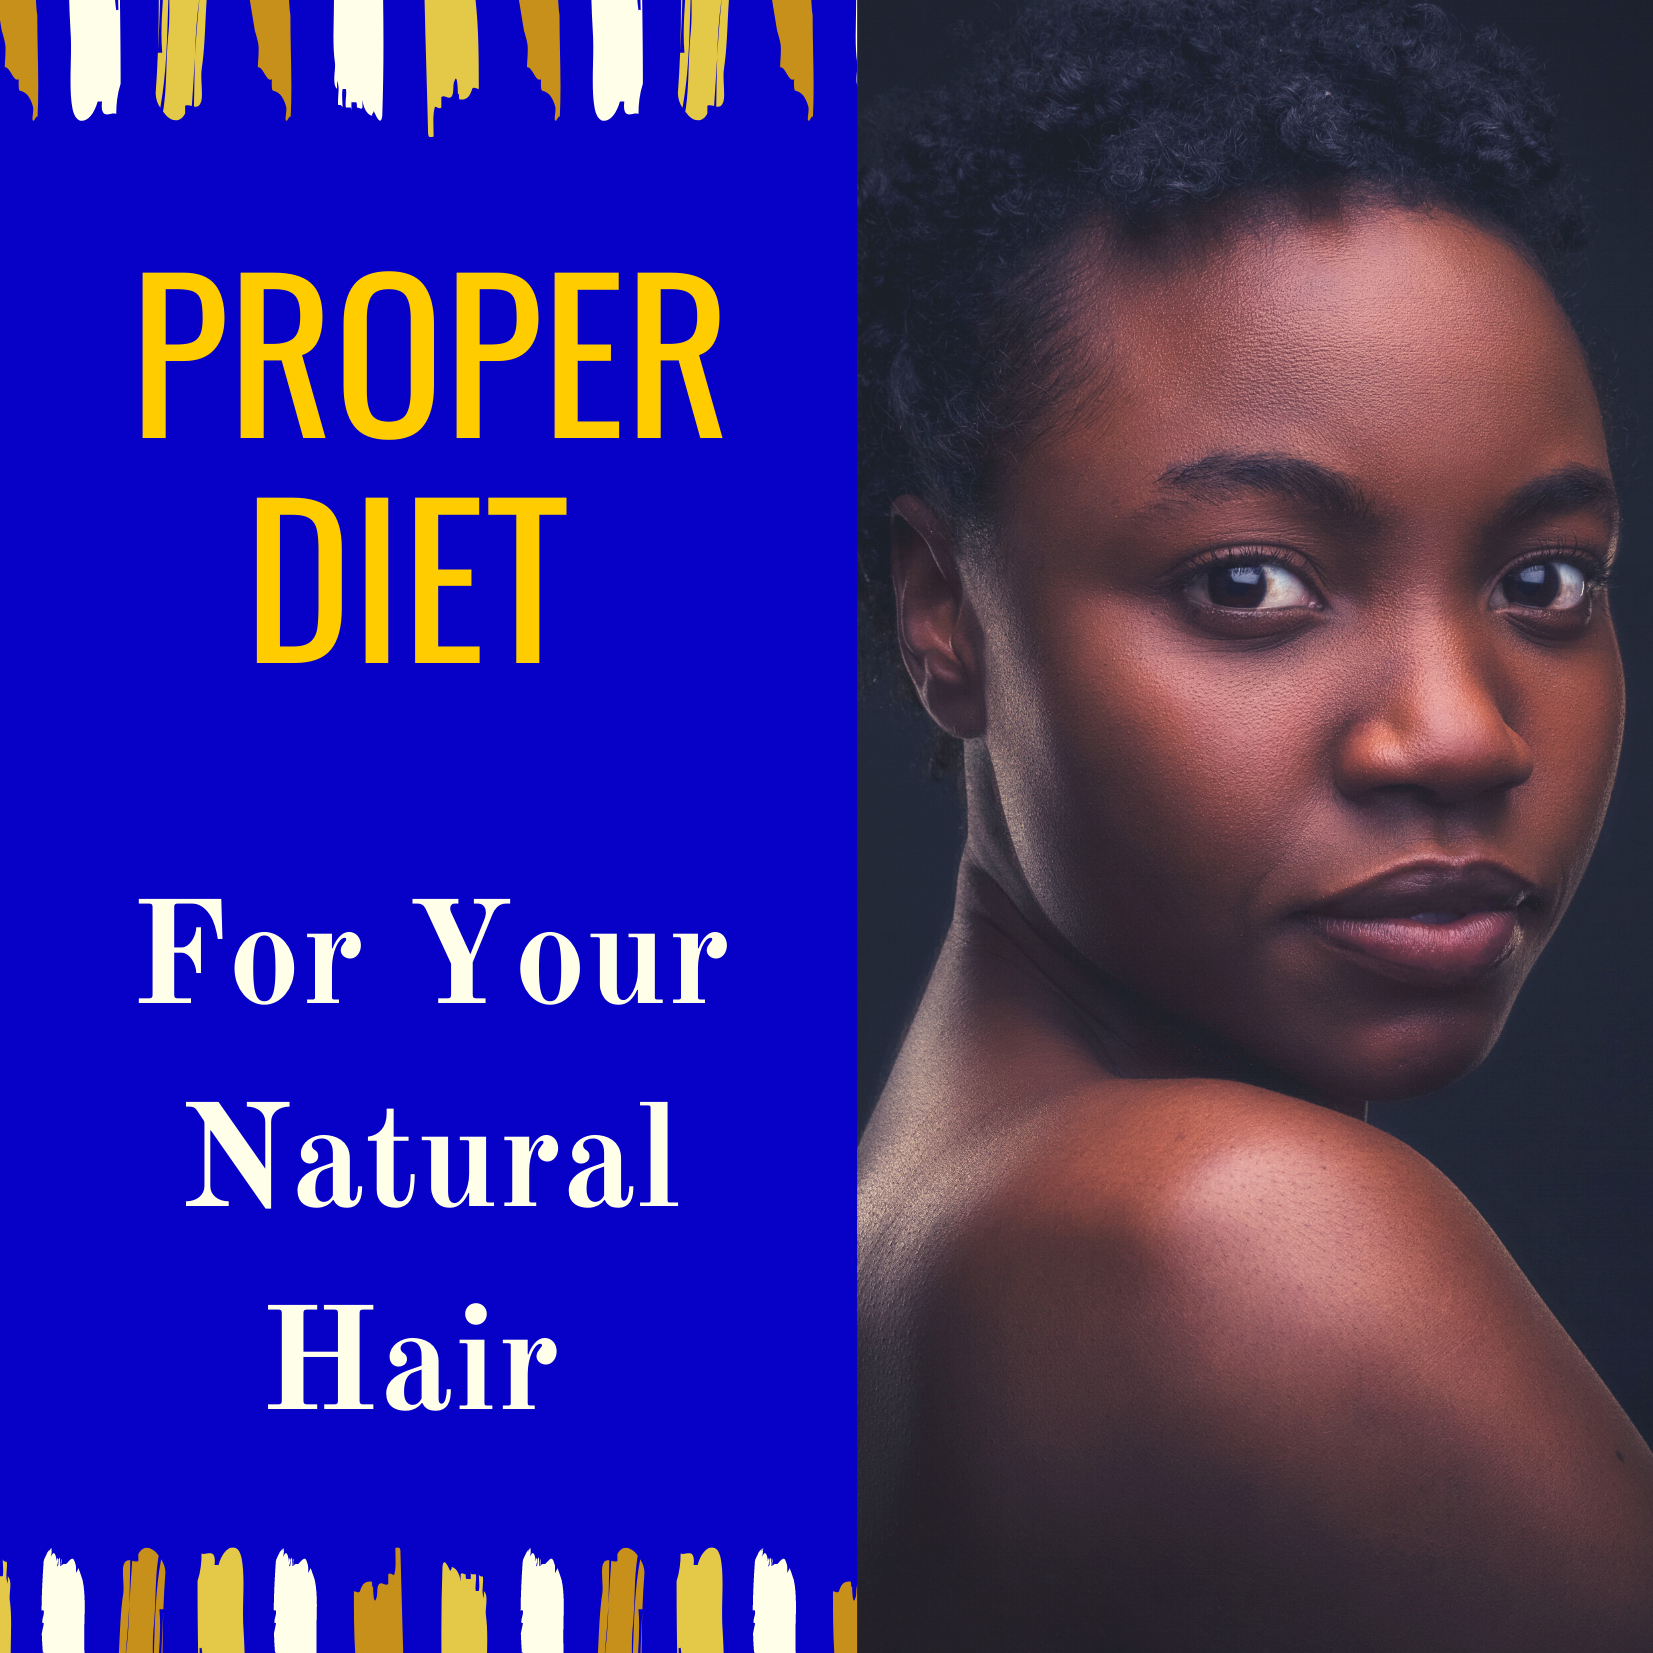 Proper Diet For Your Natural Hair